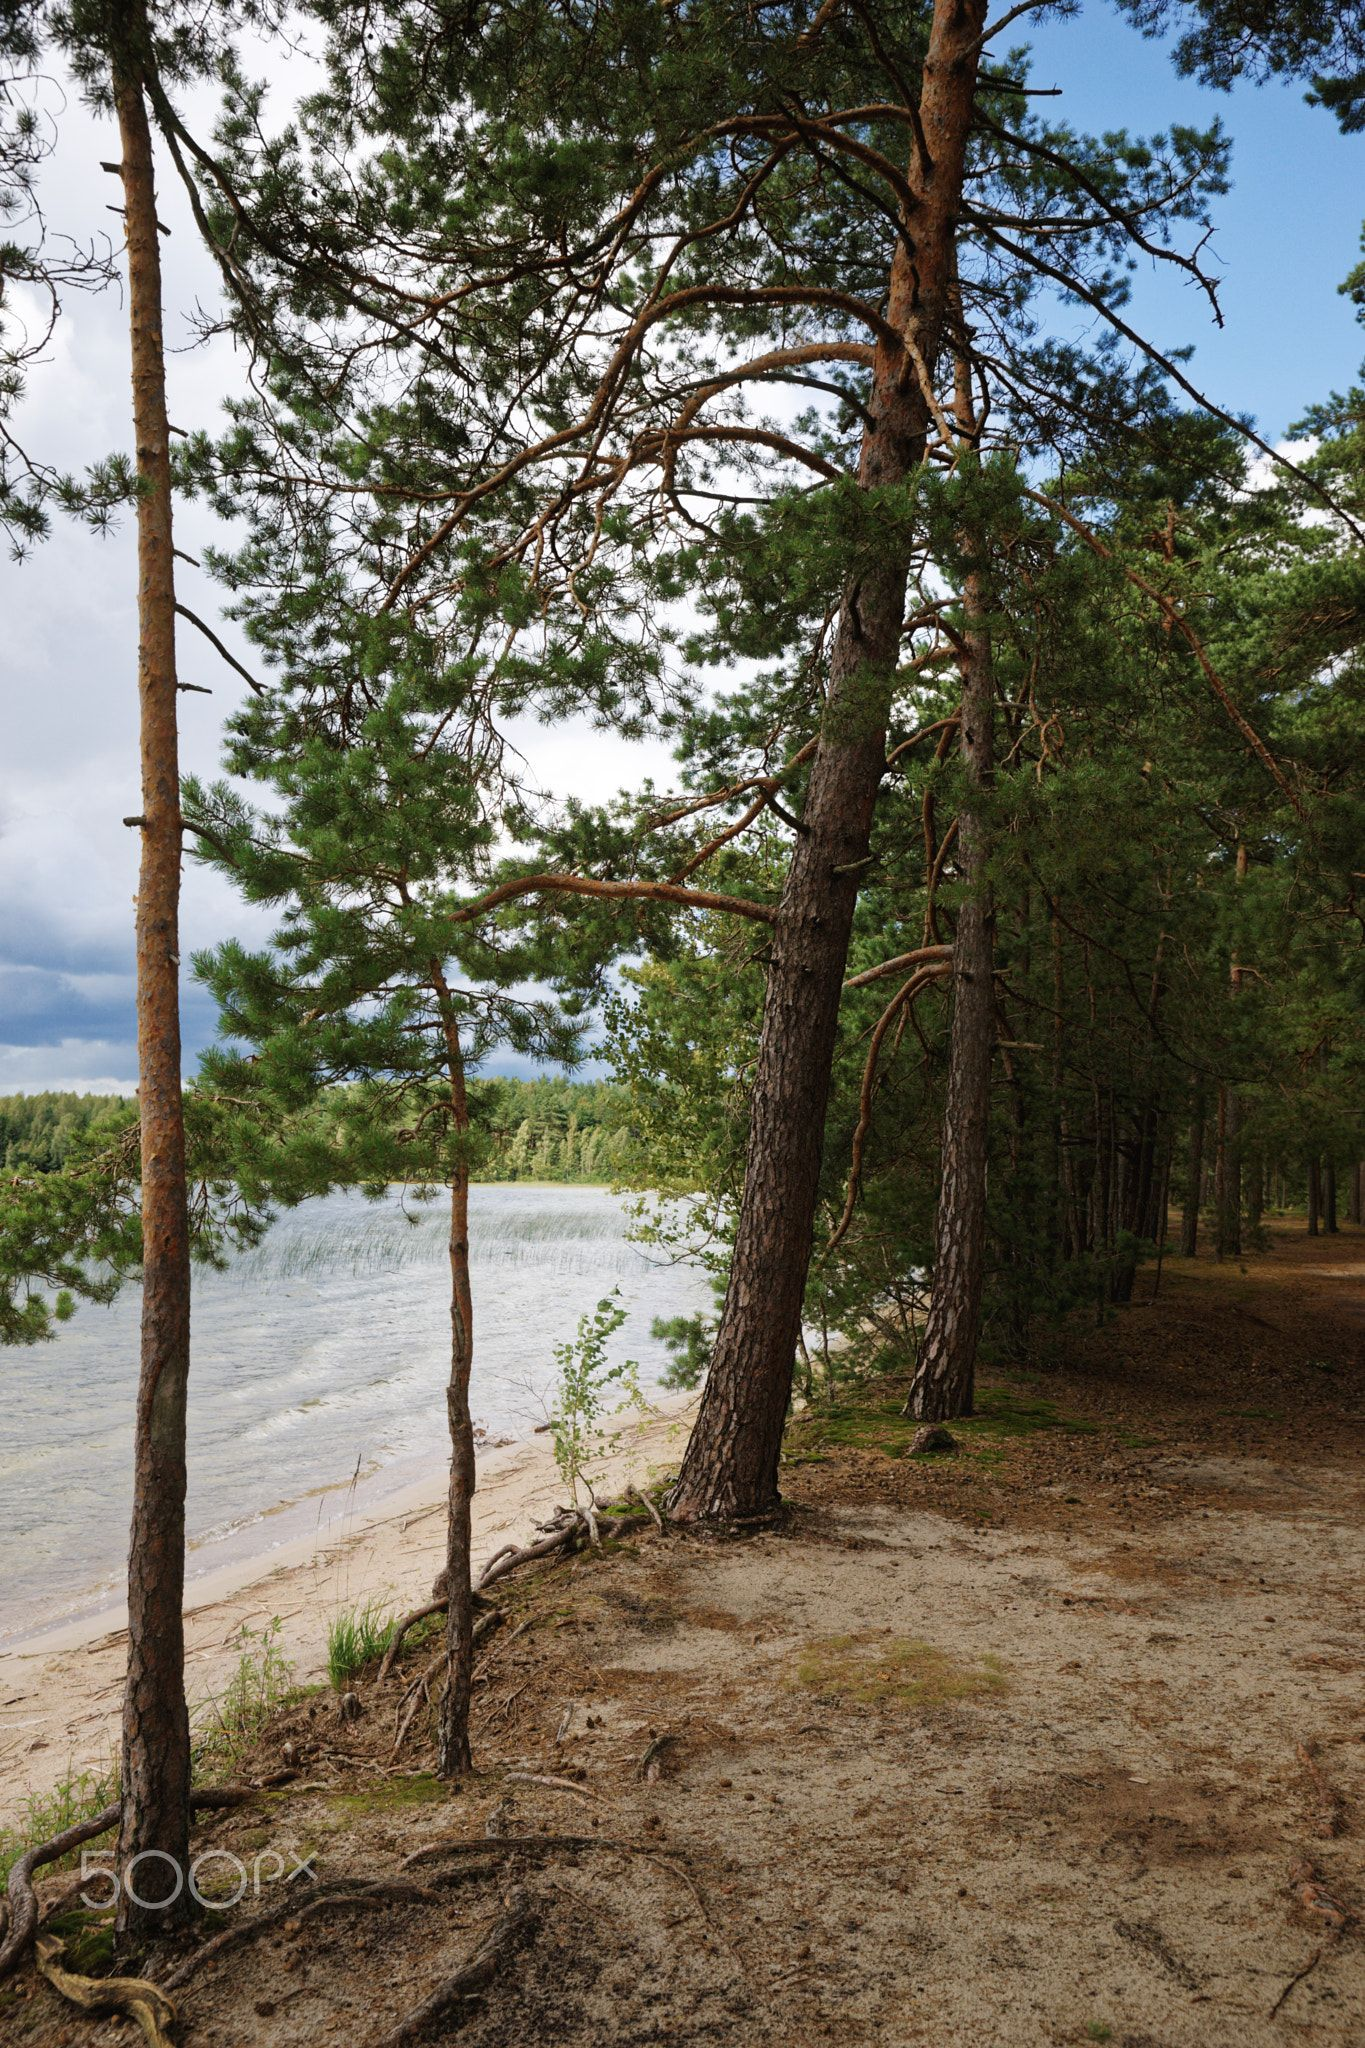 Before the storm - II. - The deserted shore of the lake next to the mixed forest.